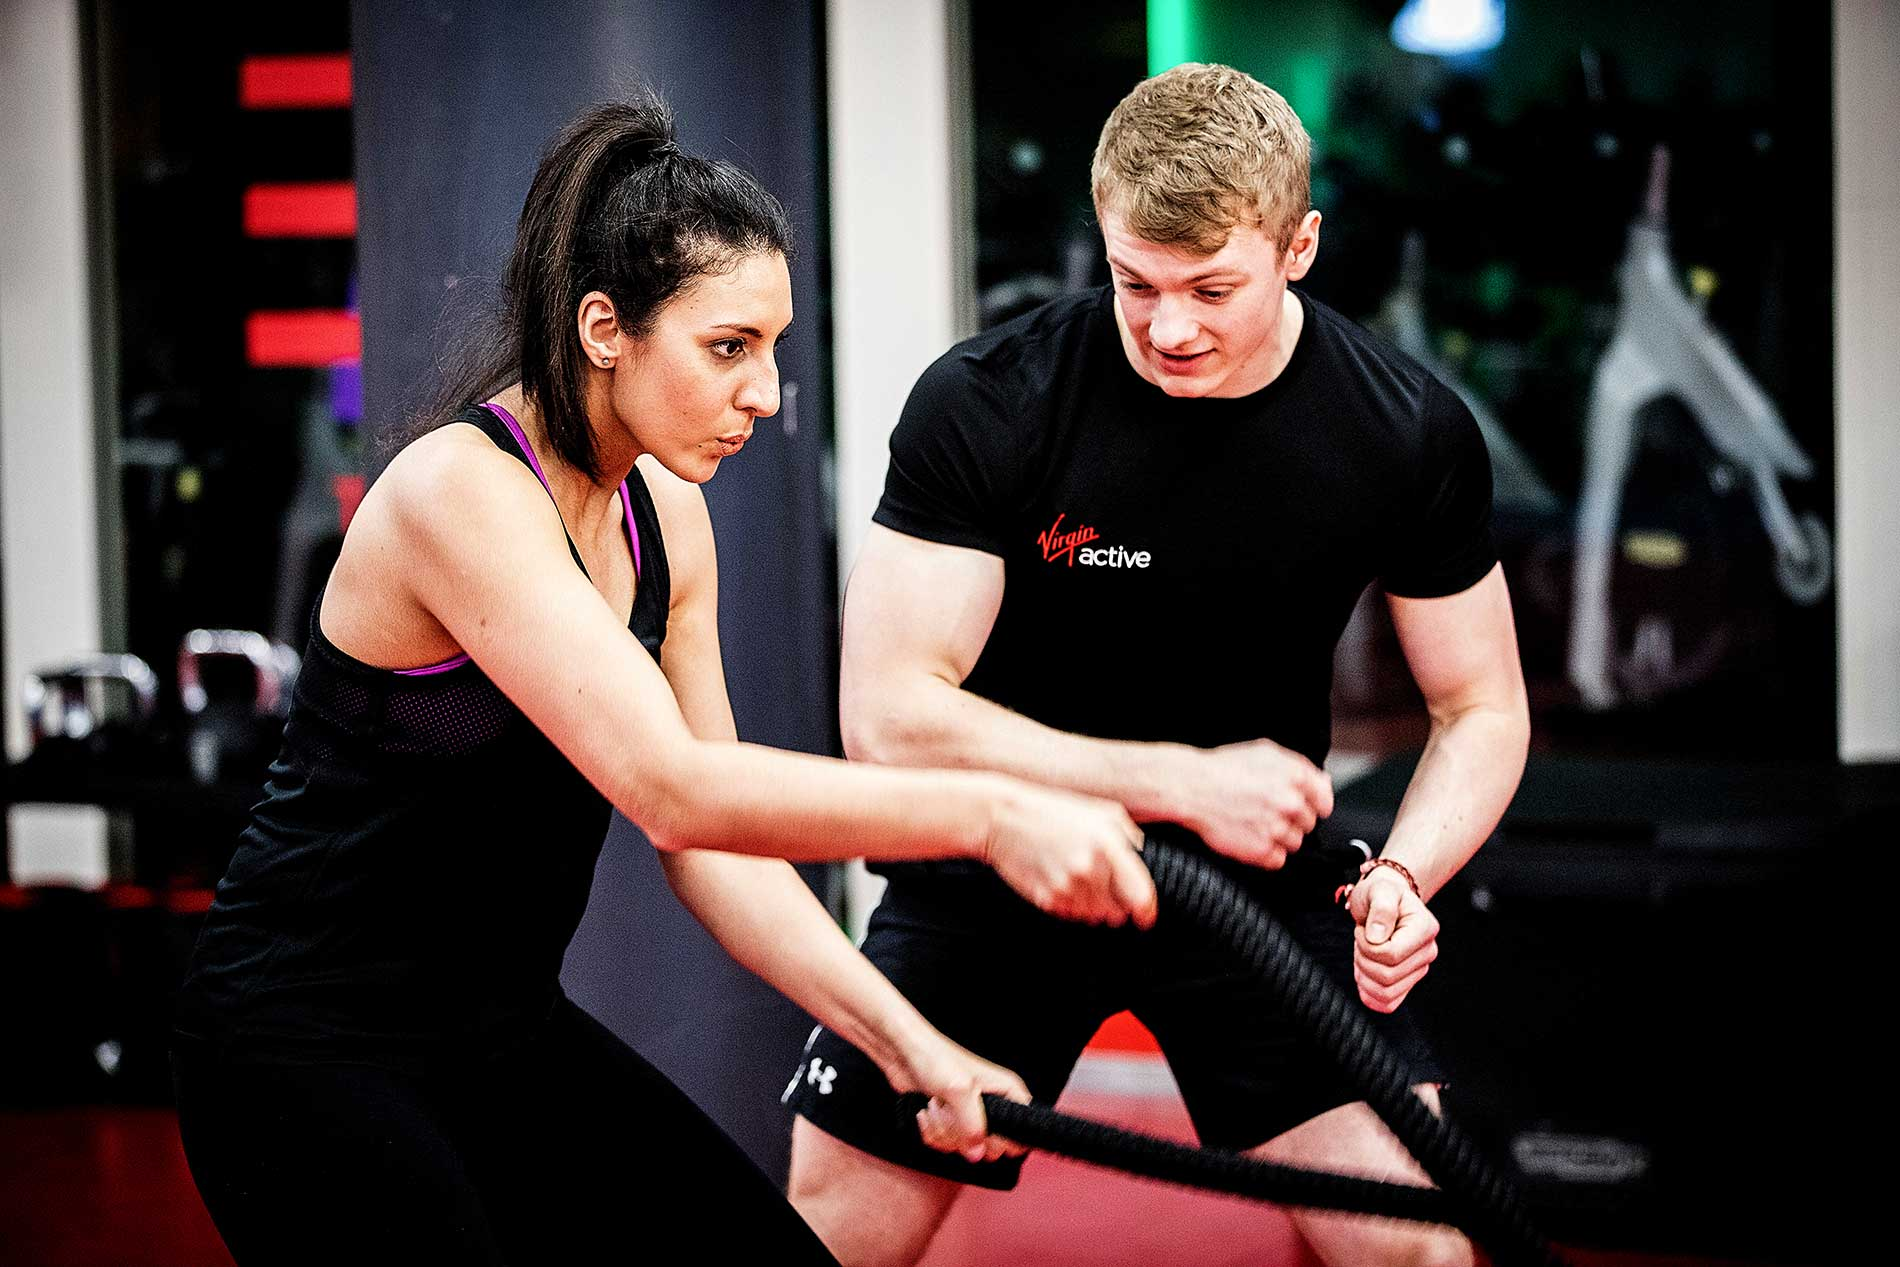 Whether You Want To Look Good For That Big Day Get In Shape After A Baby Or Do Your Bit For A Good Cause Your Goals And Our Expert Personal Trainers